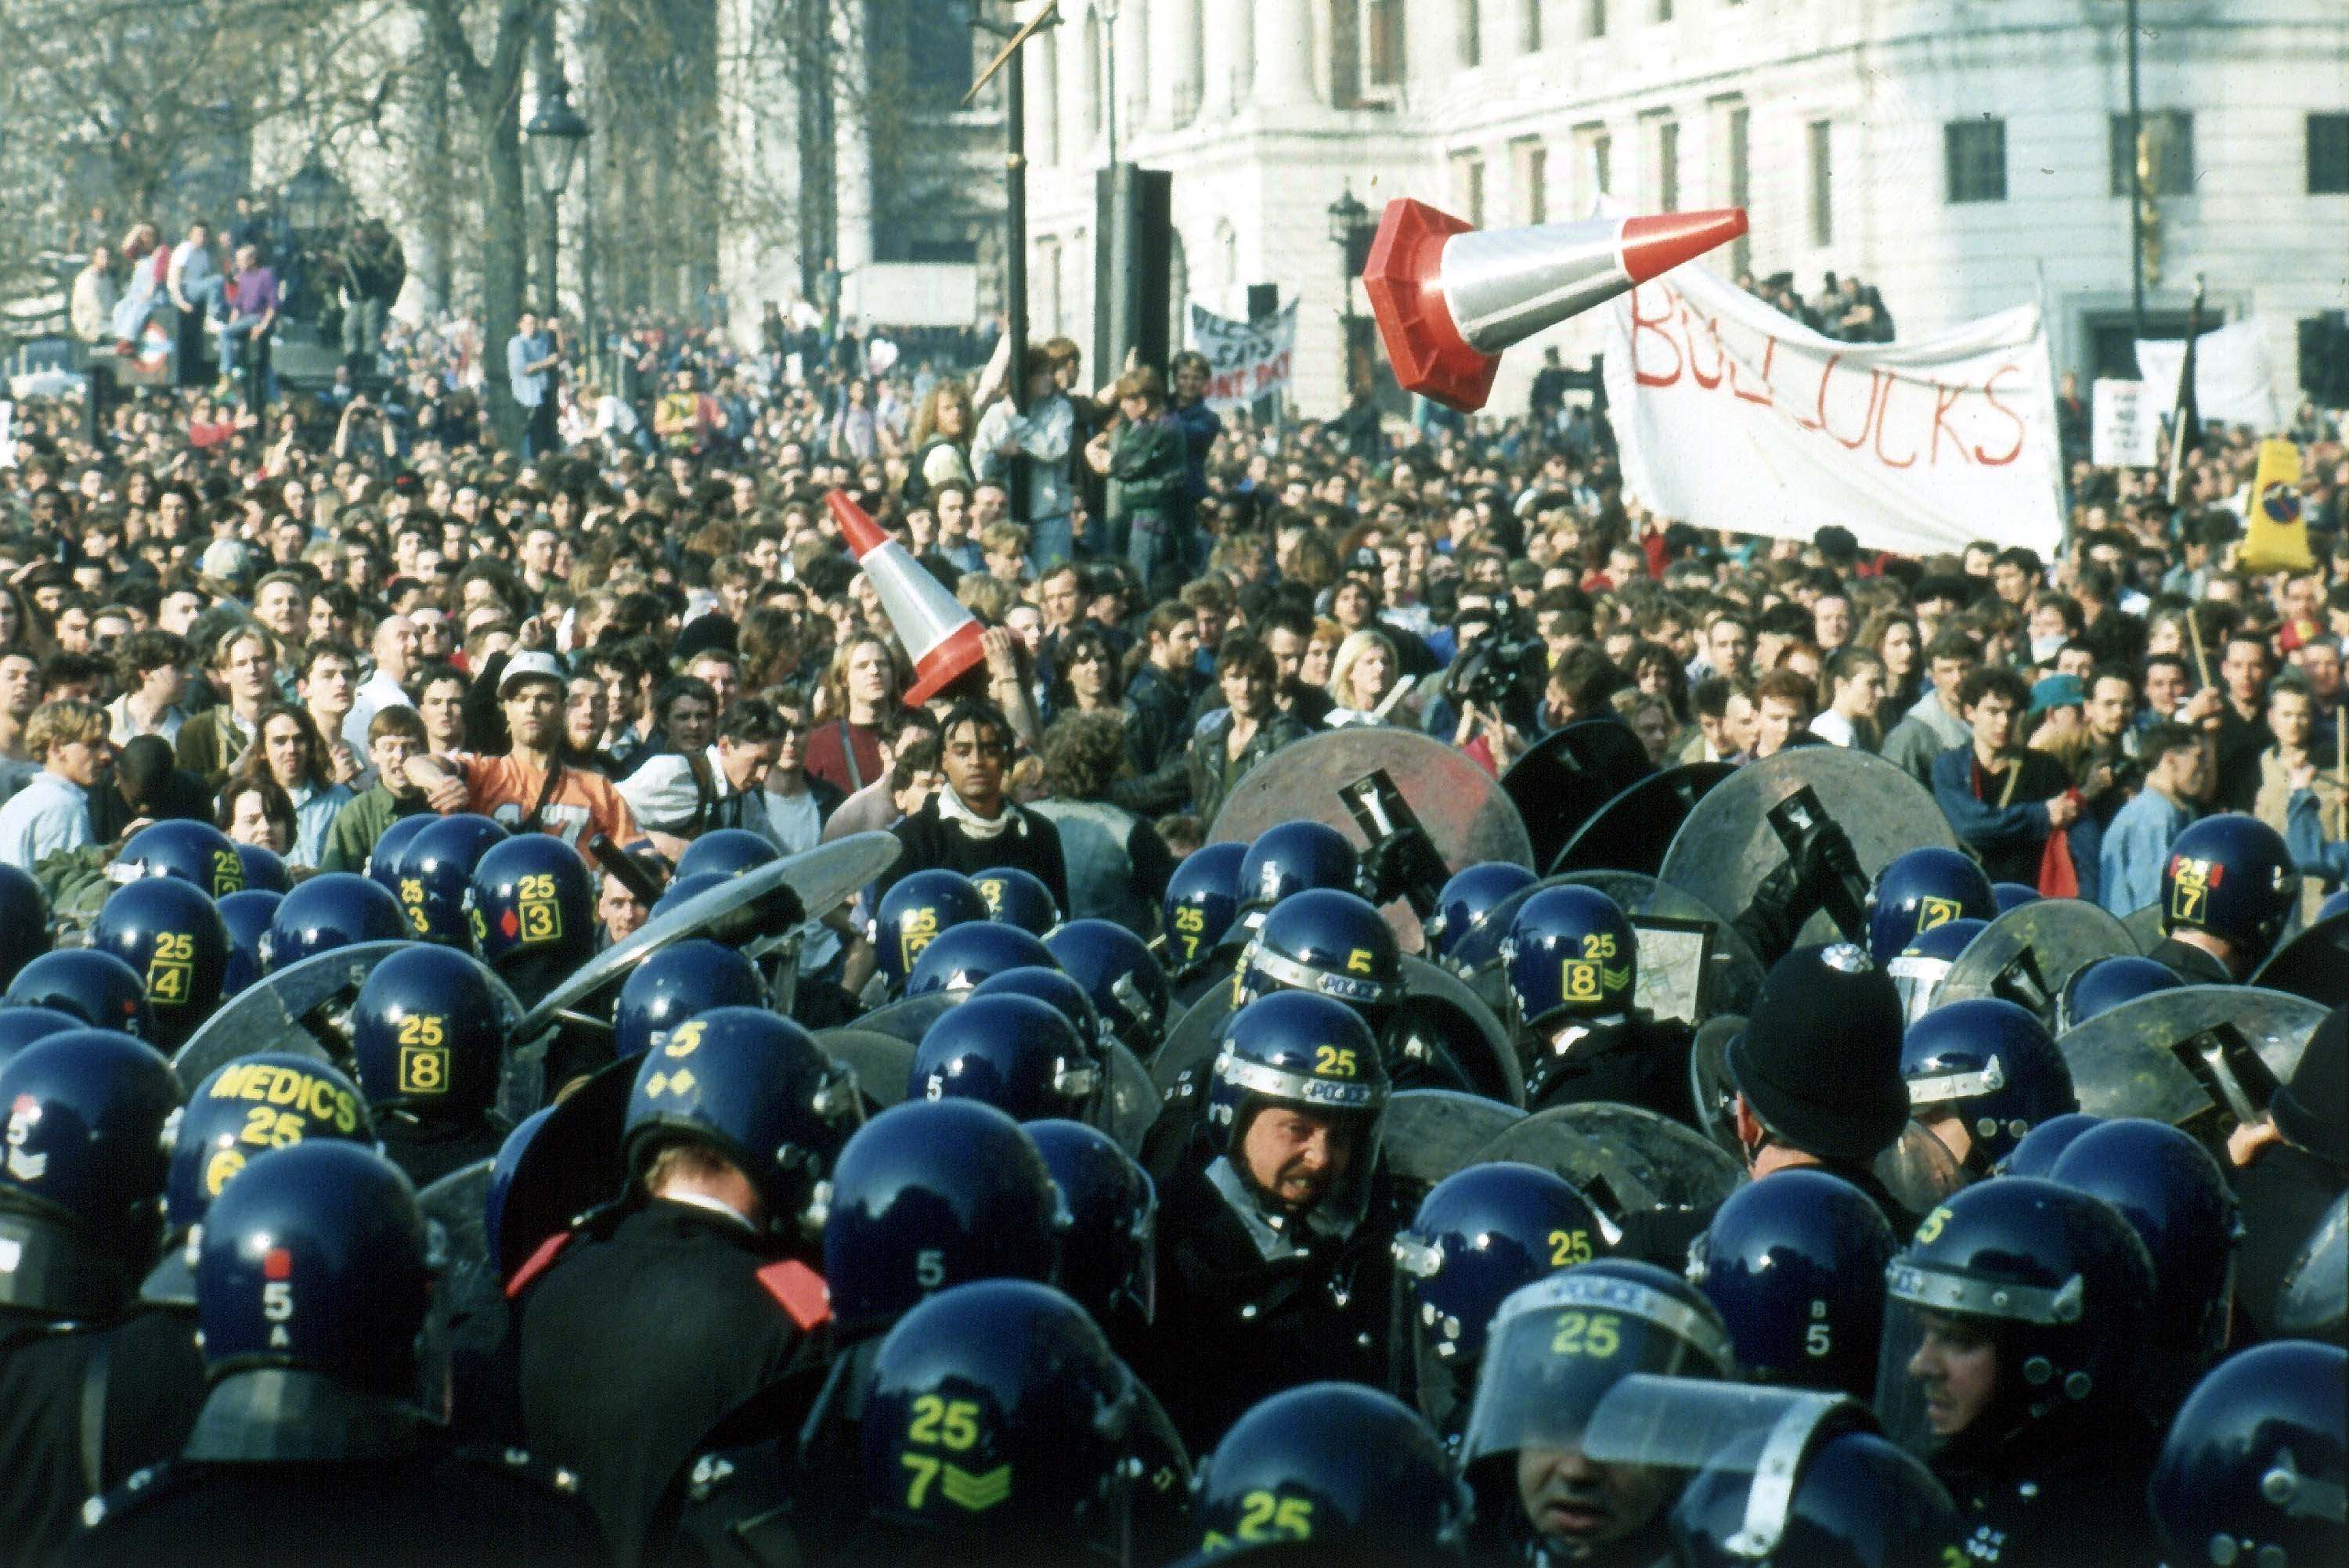 British police in riot gear are pelted with road bollards and other missiles, by anti-Poll Tax demonstrators, in Trafalgar Square, London, March 31, 1990.